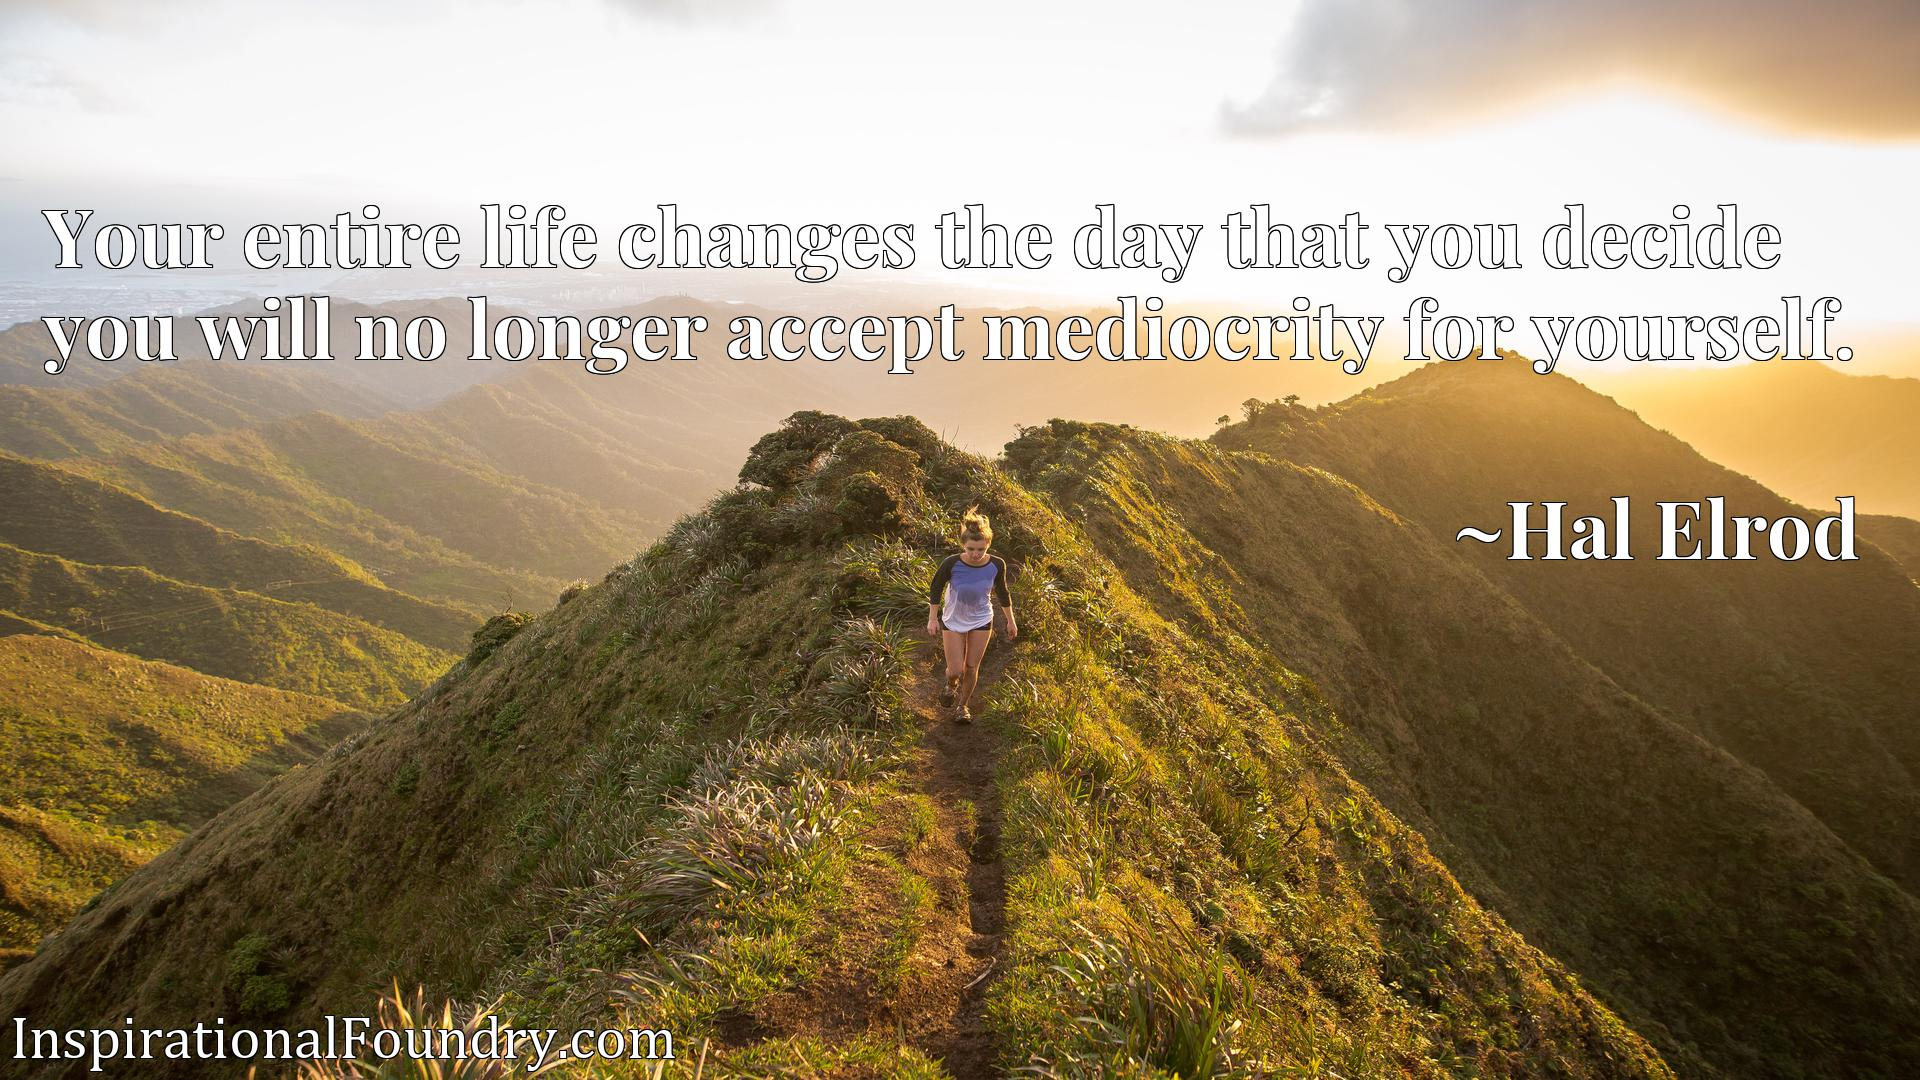 Your entire life changes the day that you decide you will no longer accept mediocrity for yourself.